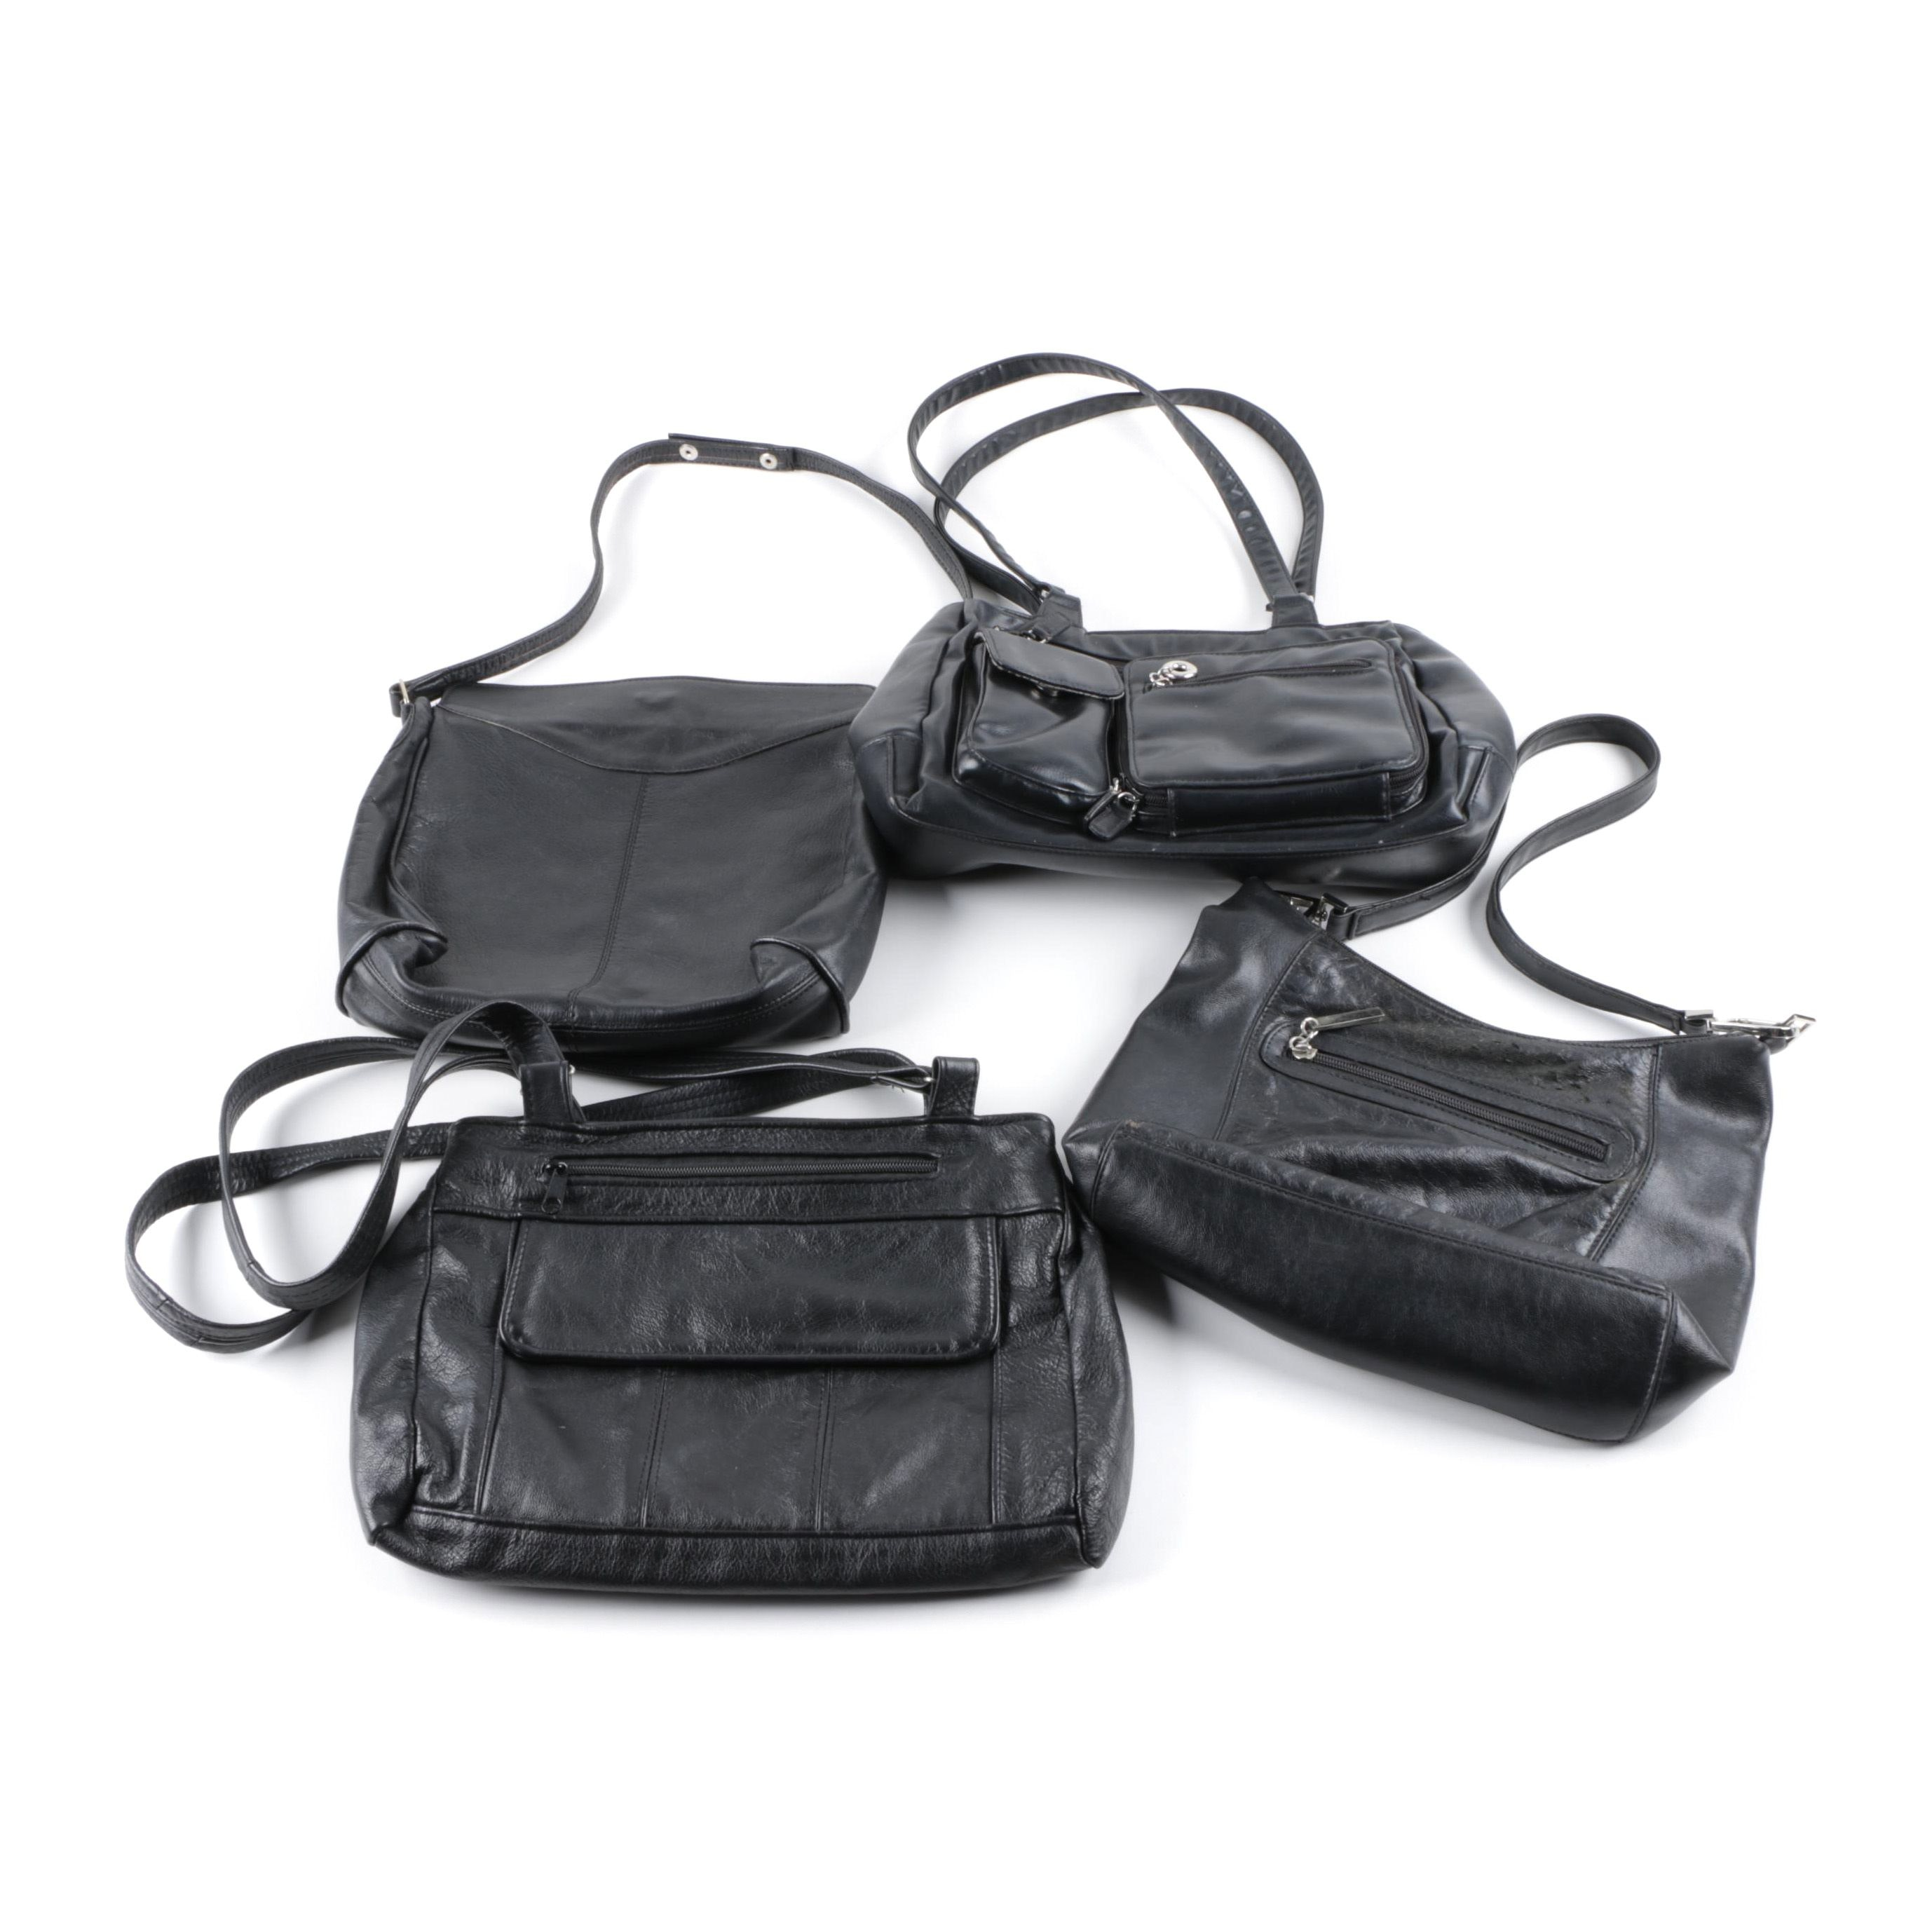 Black Leather and Faux Leather Handbags